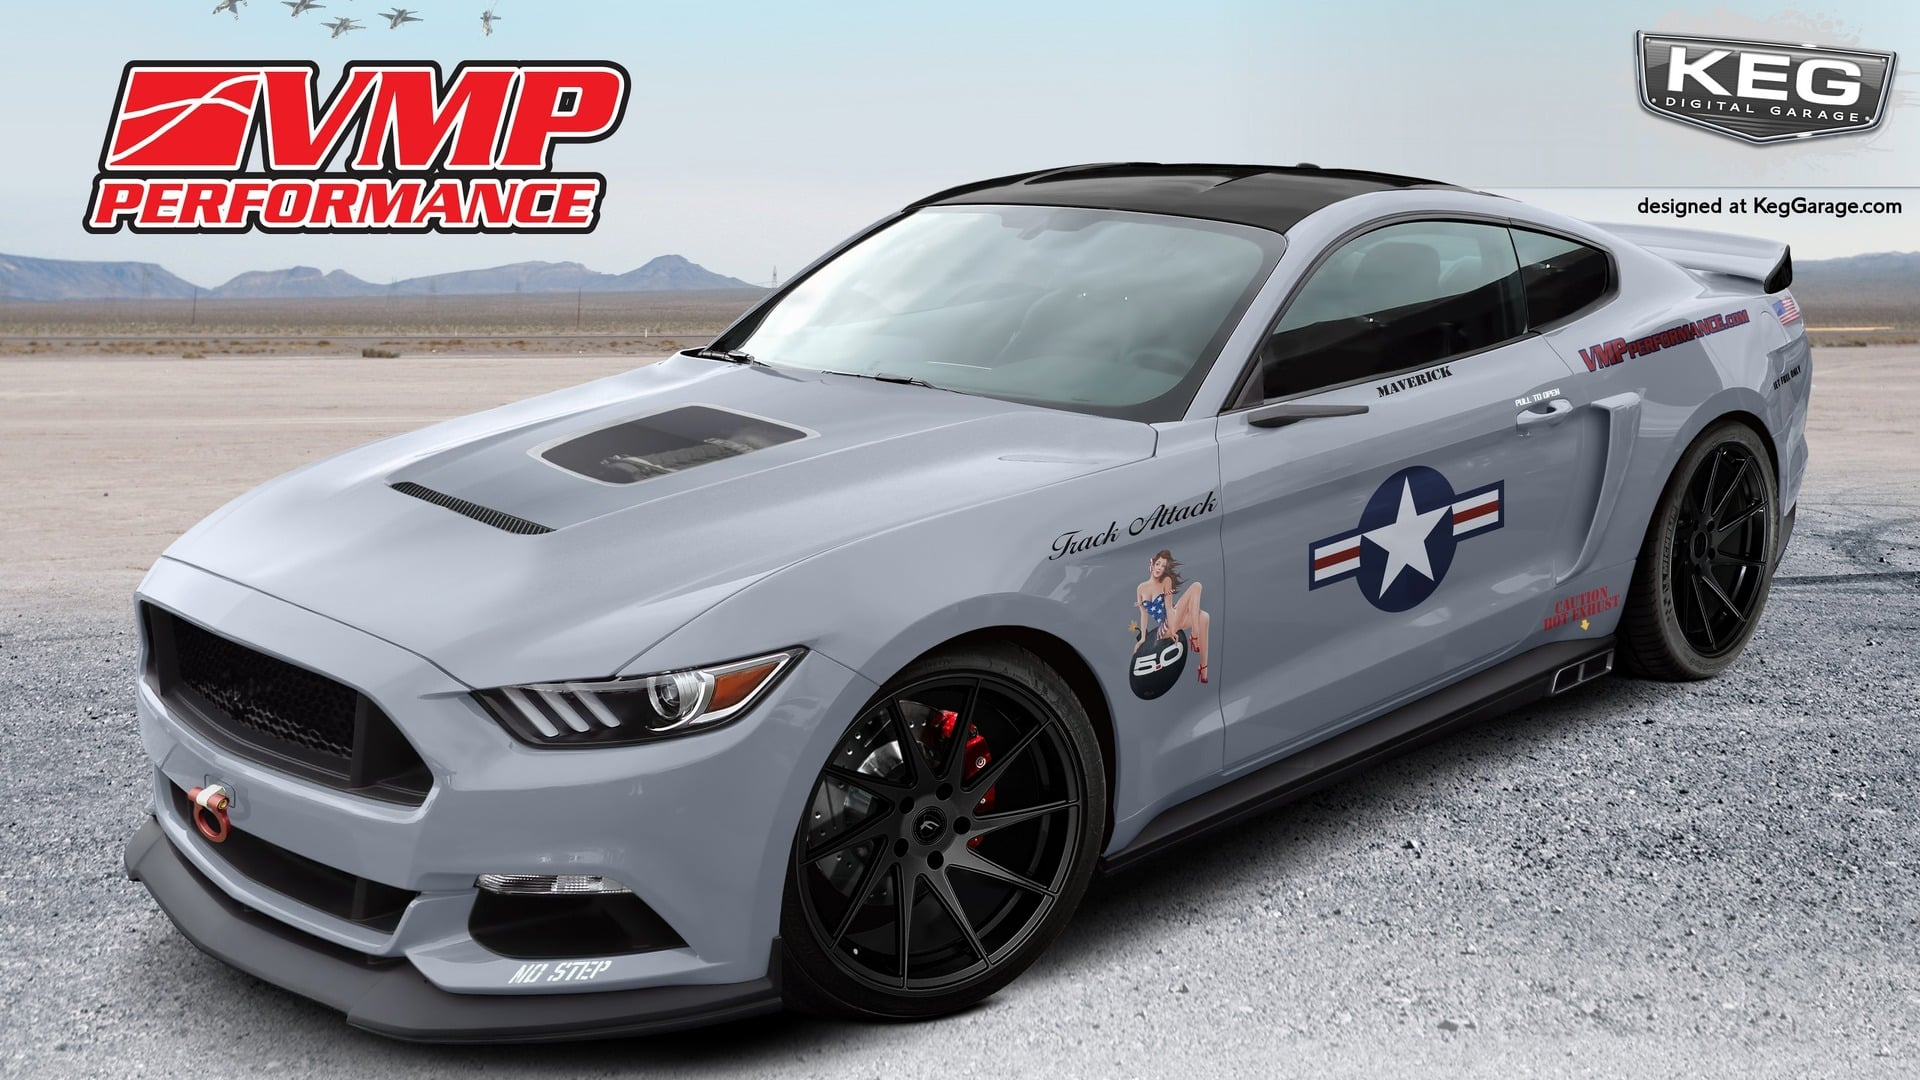 SEMA 2016 - 2017 Ford Mustang Fastback Track Attack by VMP Perfo